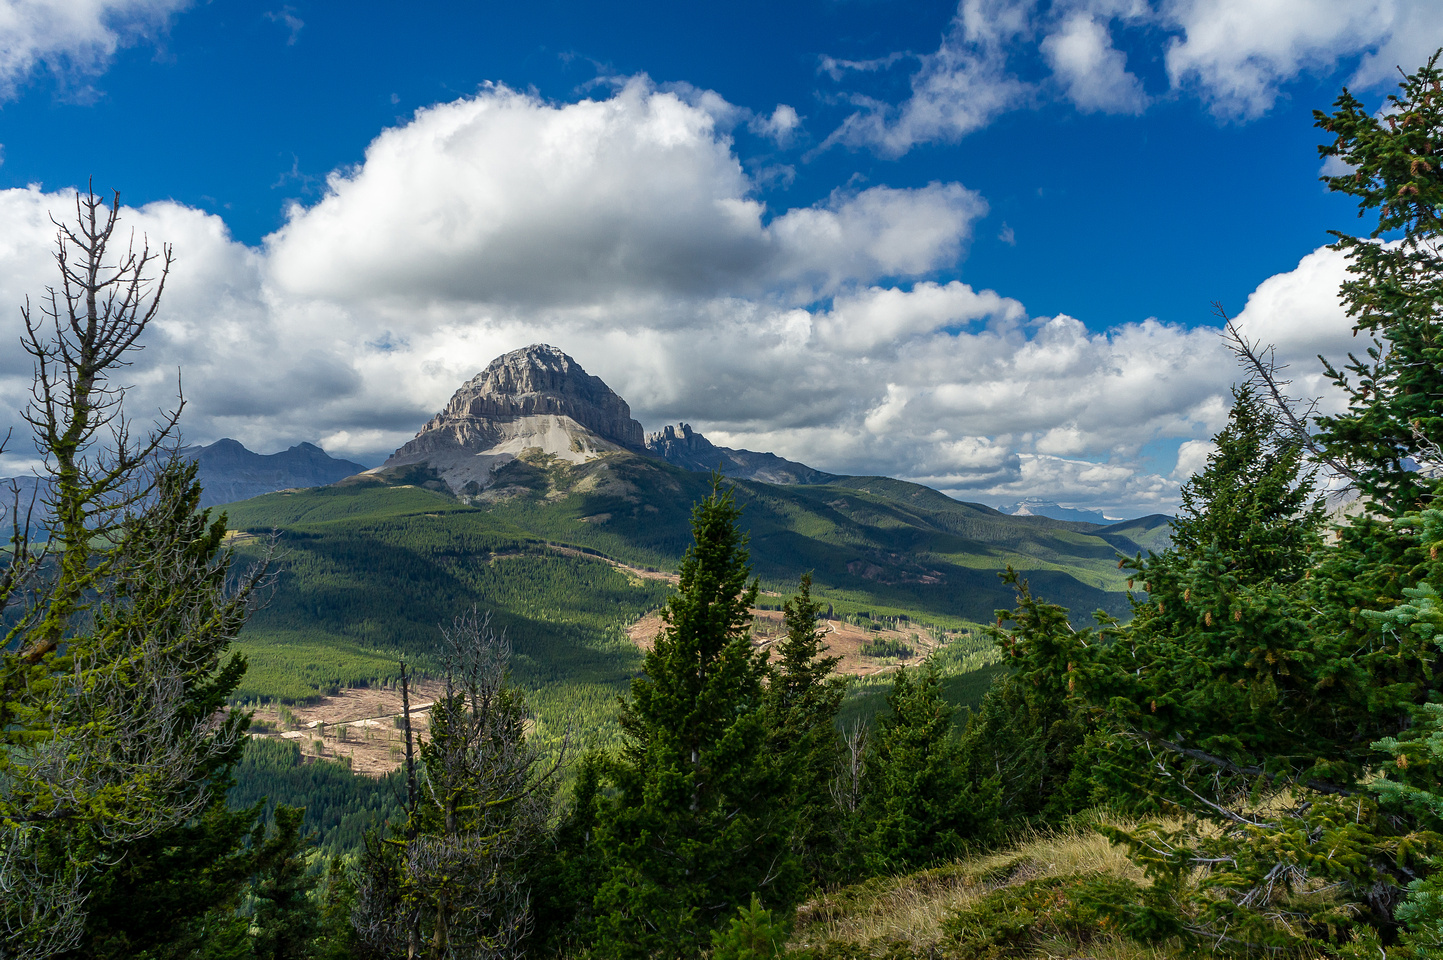 Another great view of Crowsnest Mountain.